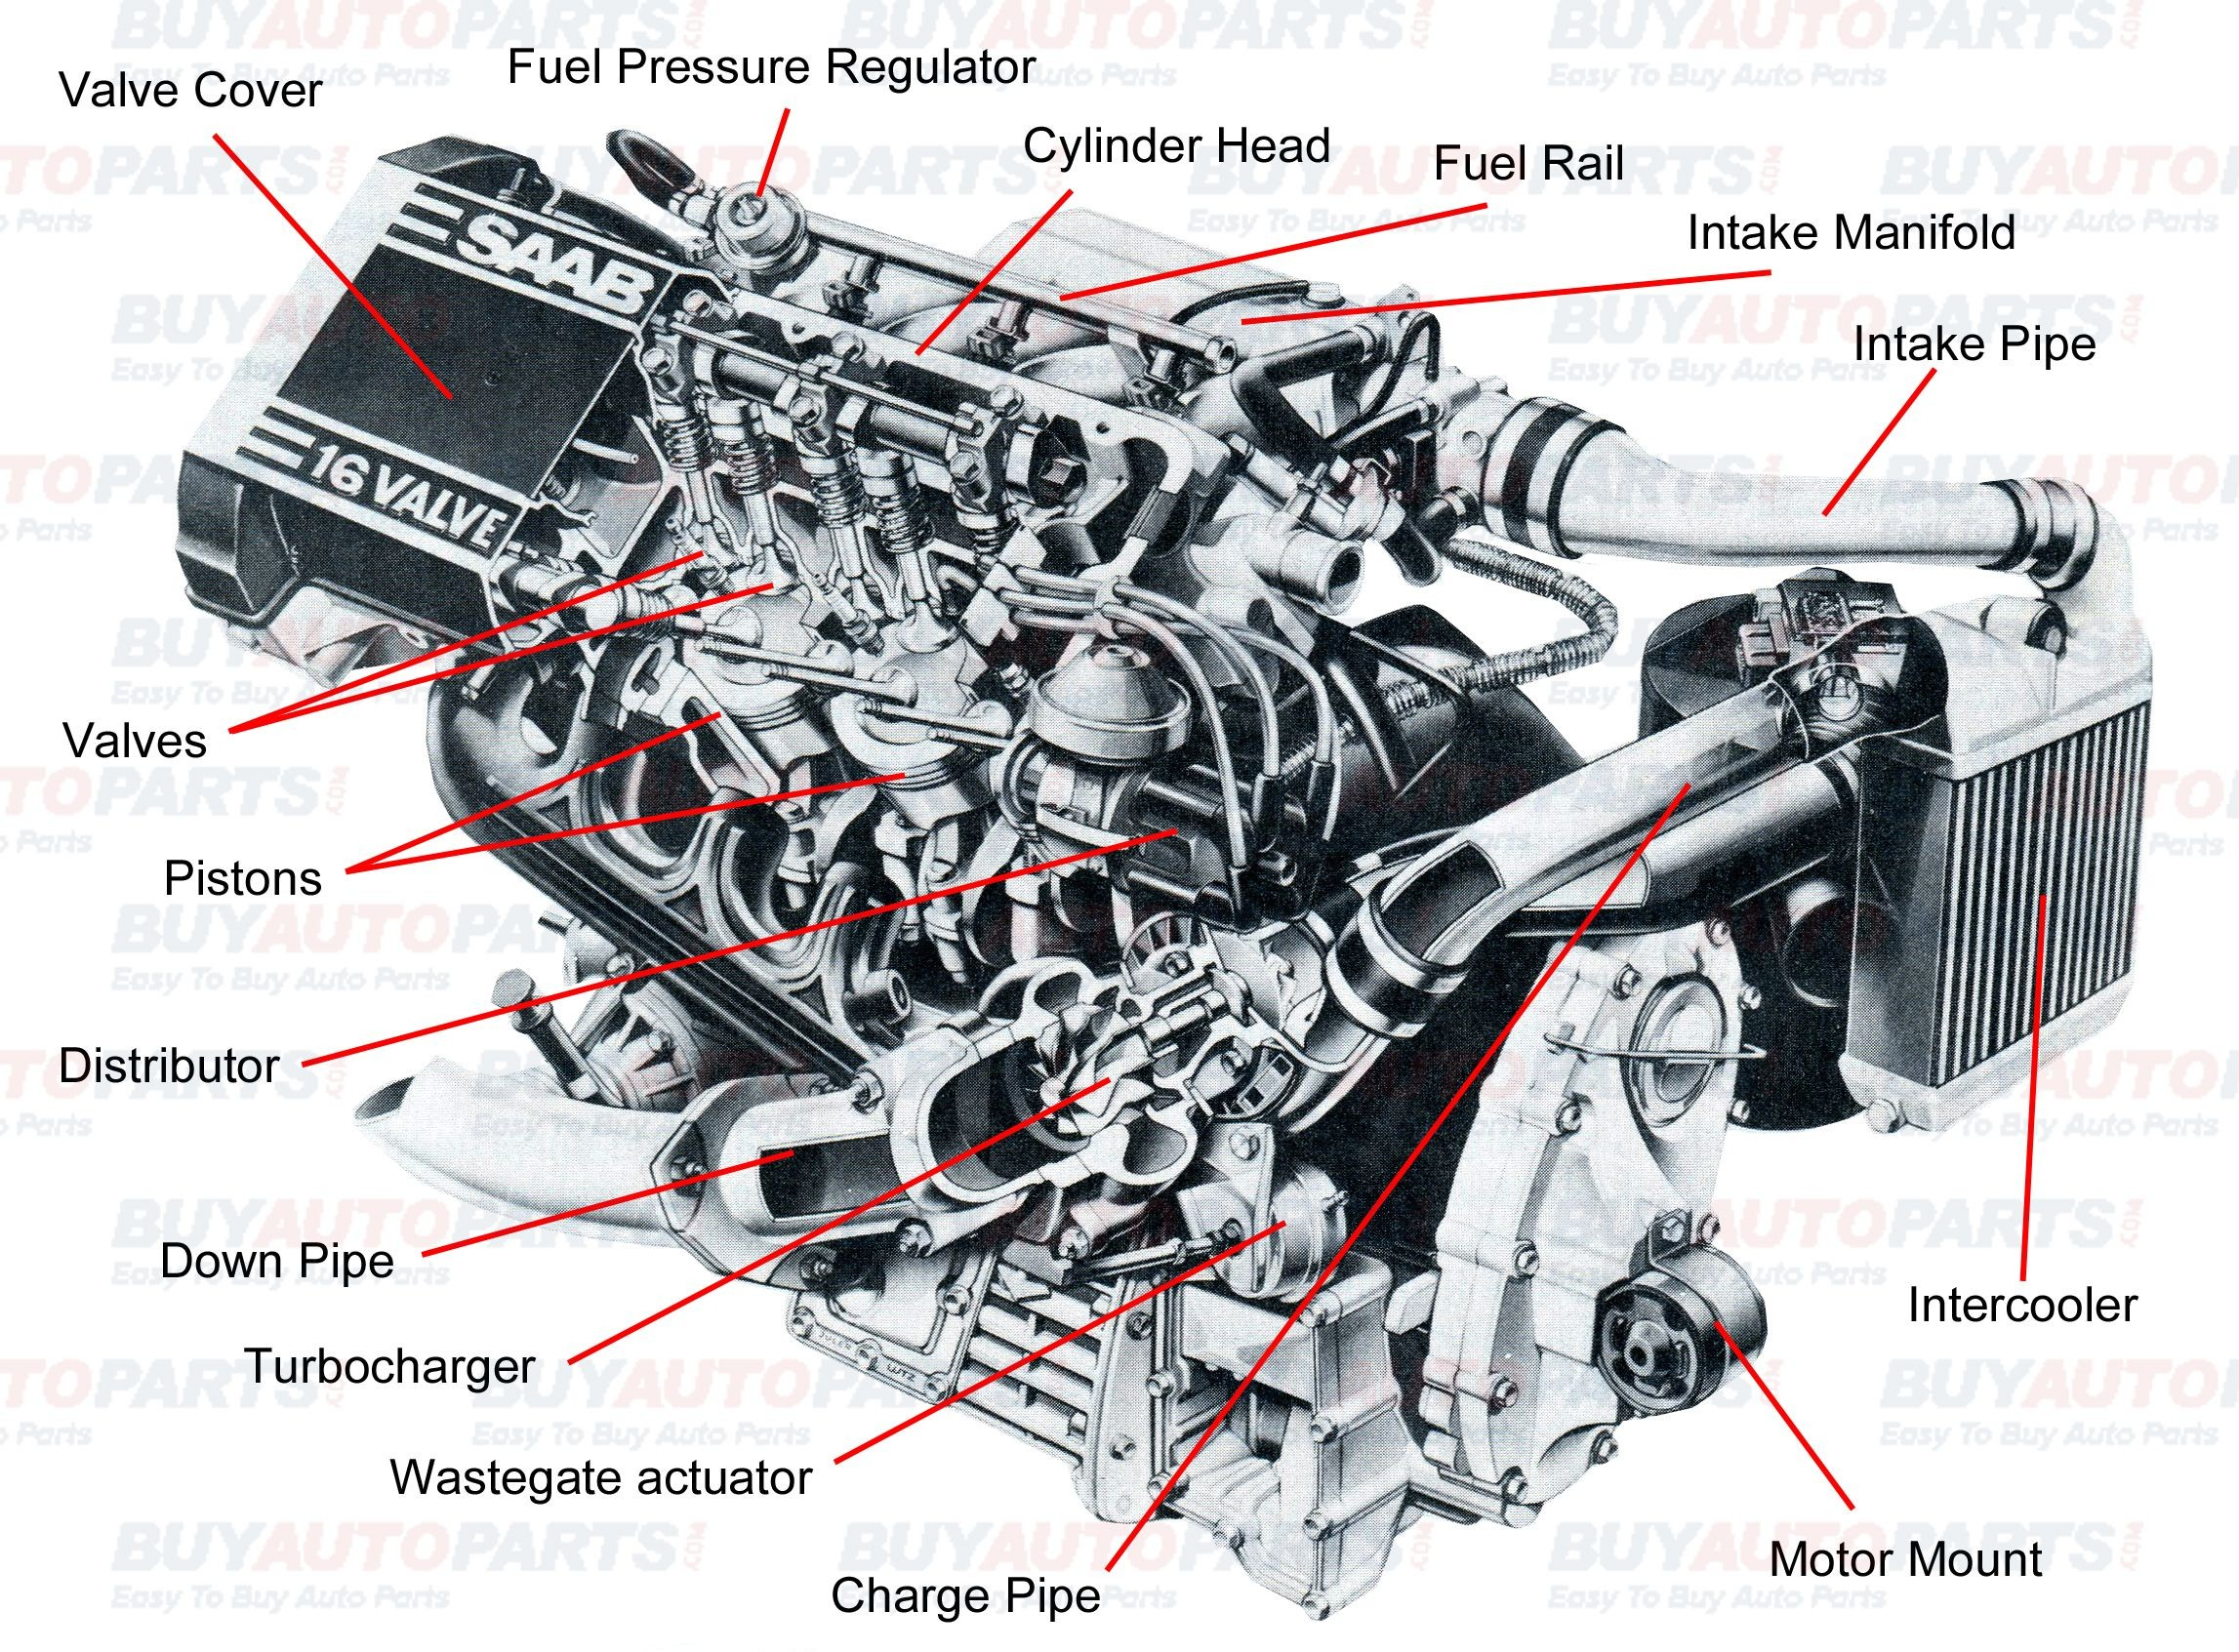 golf mk5 stereo wiring diagram lincoln ranger 8 welder of car motor pin by jimmiejanet testellamwfz on what does an engine with turbo – my ...